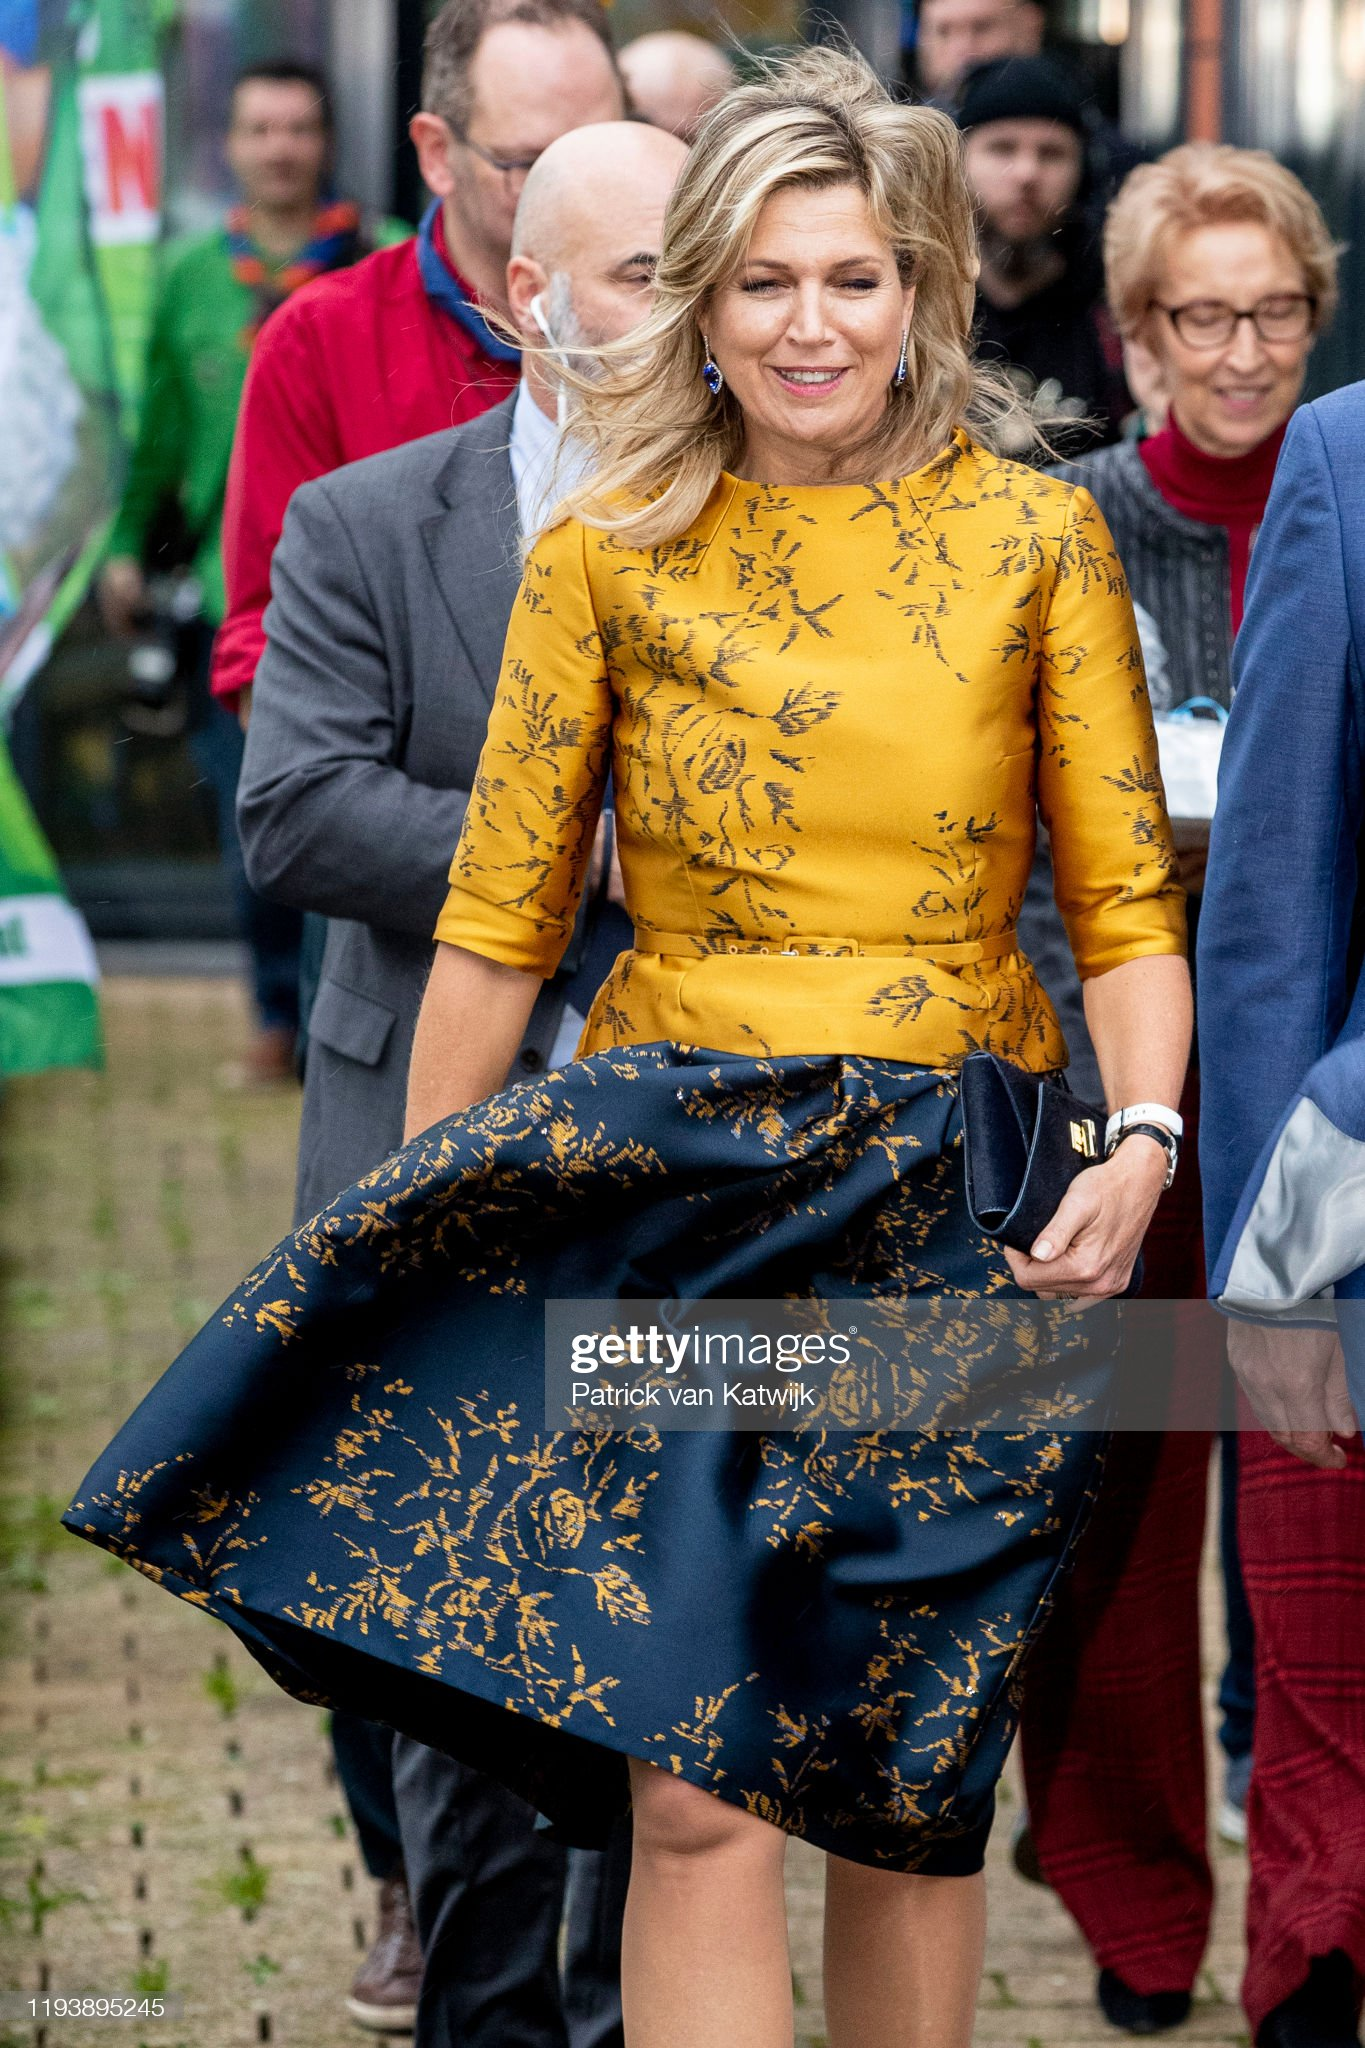 https://media.gettyimages.com/photos/queen-maxima-of-the-netherlands-during-a-visit-to-the-scouting-cubs-picture-id1193895245?s=2048x2048